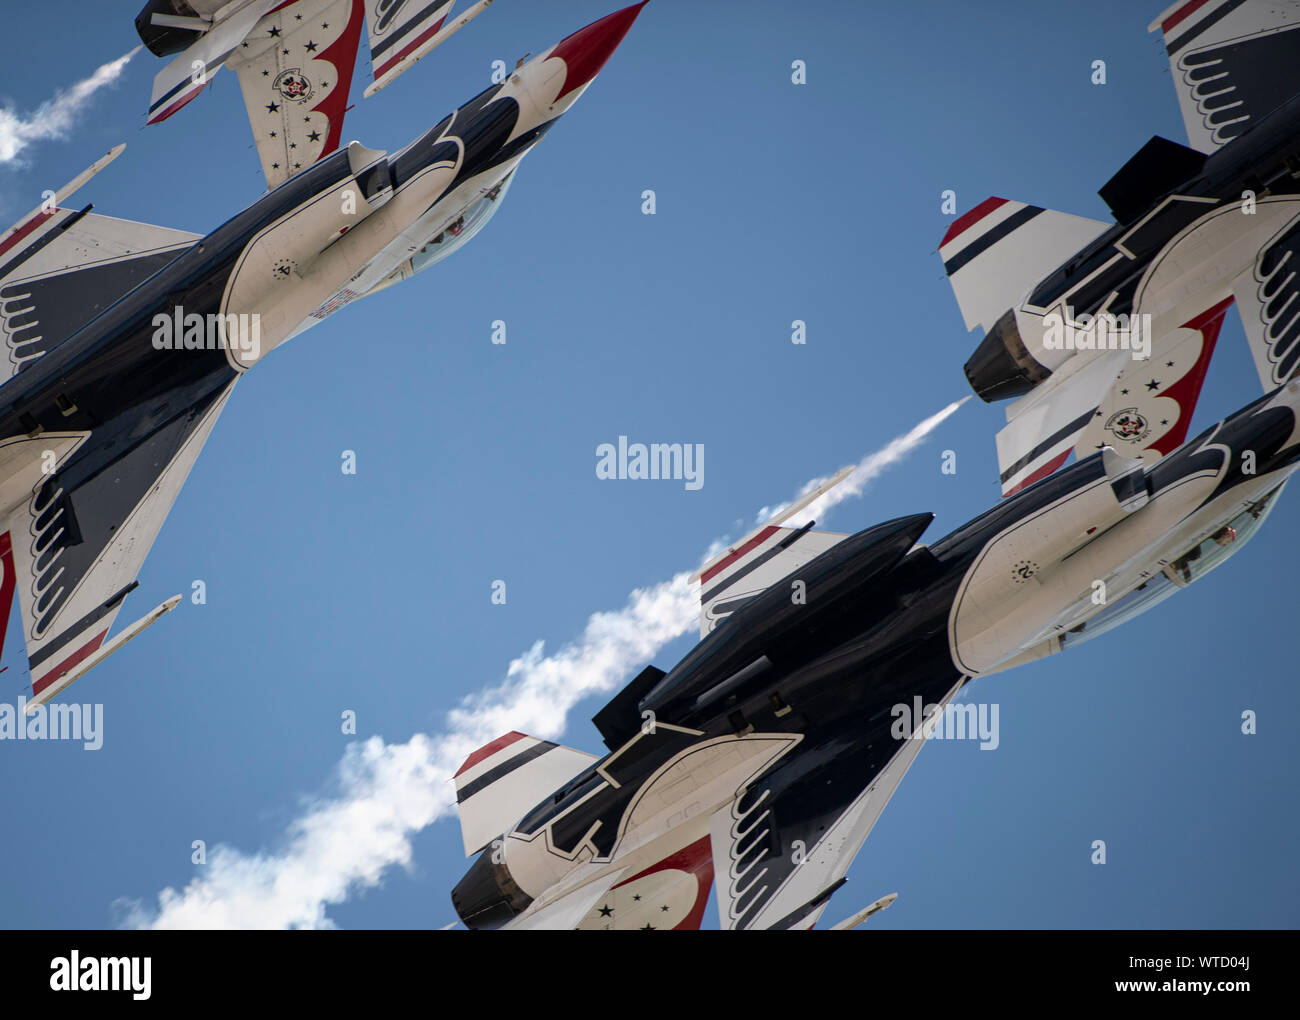 "The United States Air Force Air Demonstration Squadron ""Thunderbirds"" perform during the Grissom Air and Space Expo, Sept. 7, 2019, at Grissom Air Reserve Base, Ind. The Thunderbirds perform at more than 30 show sites each year, highlighting the pride, precision and professionalism of the Air Force. (U.S. Air Force photo by Senior Airman Andrew D. Sarver) Stock Photo"